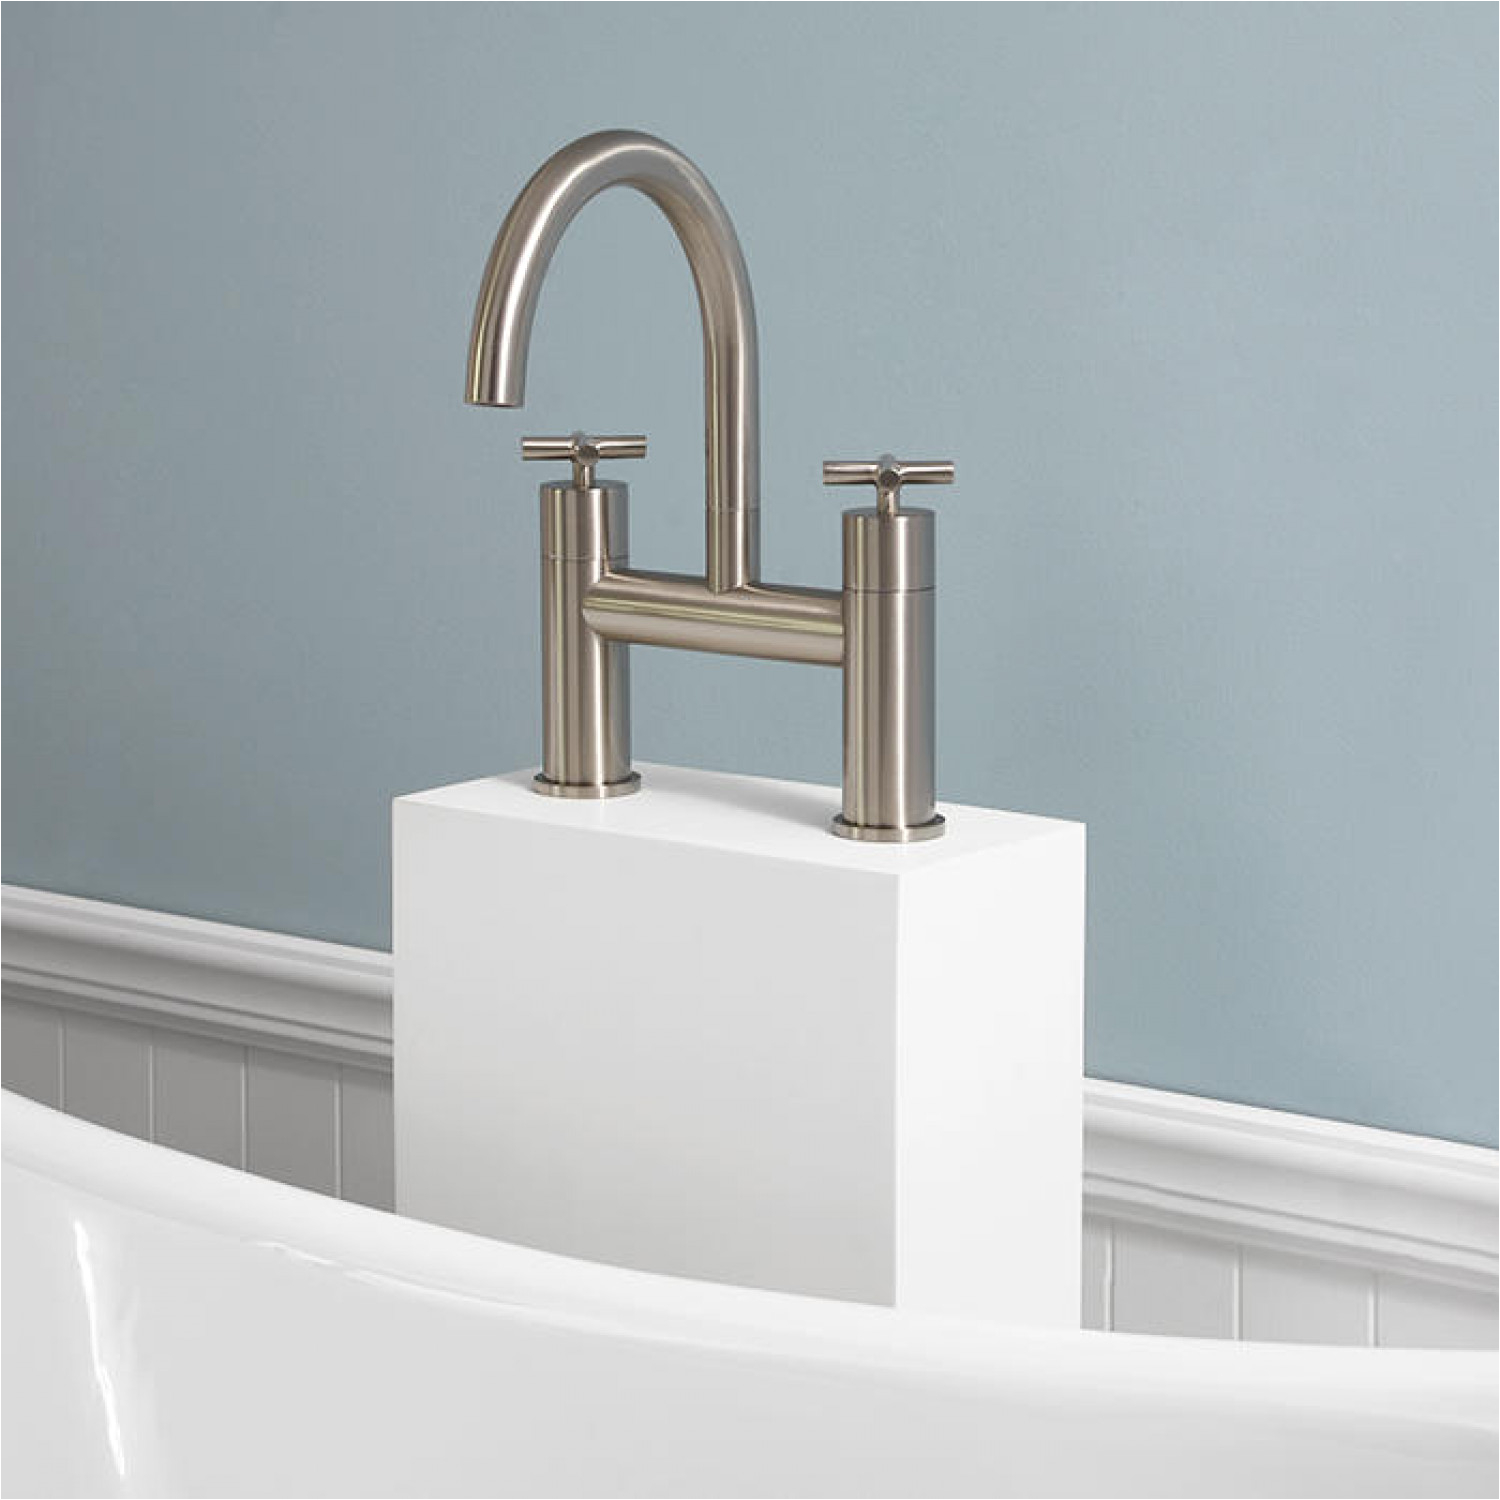 exira freestanding tub filler with resin faucet tower